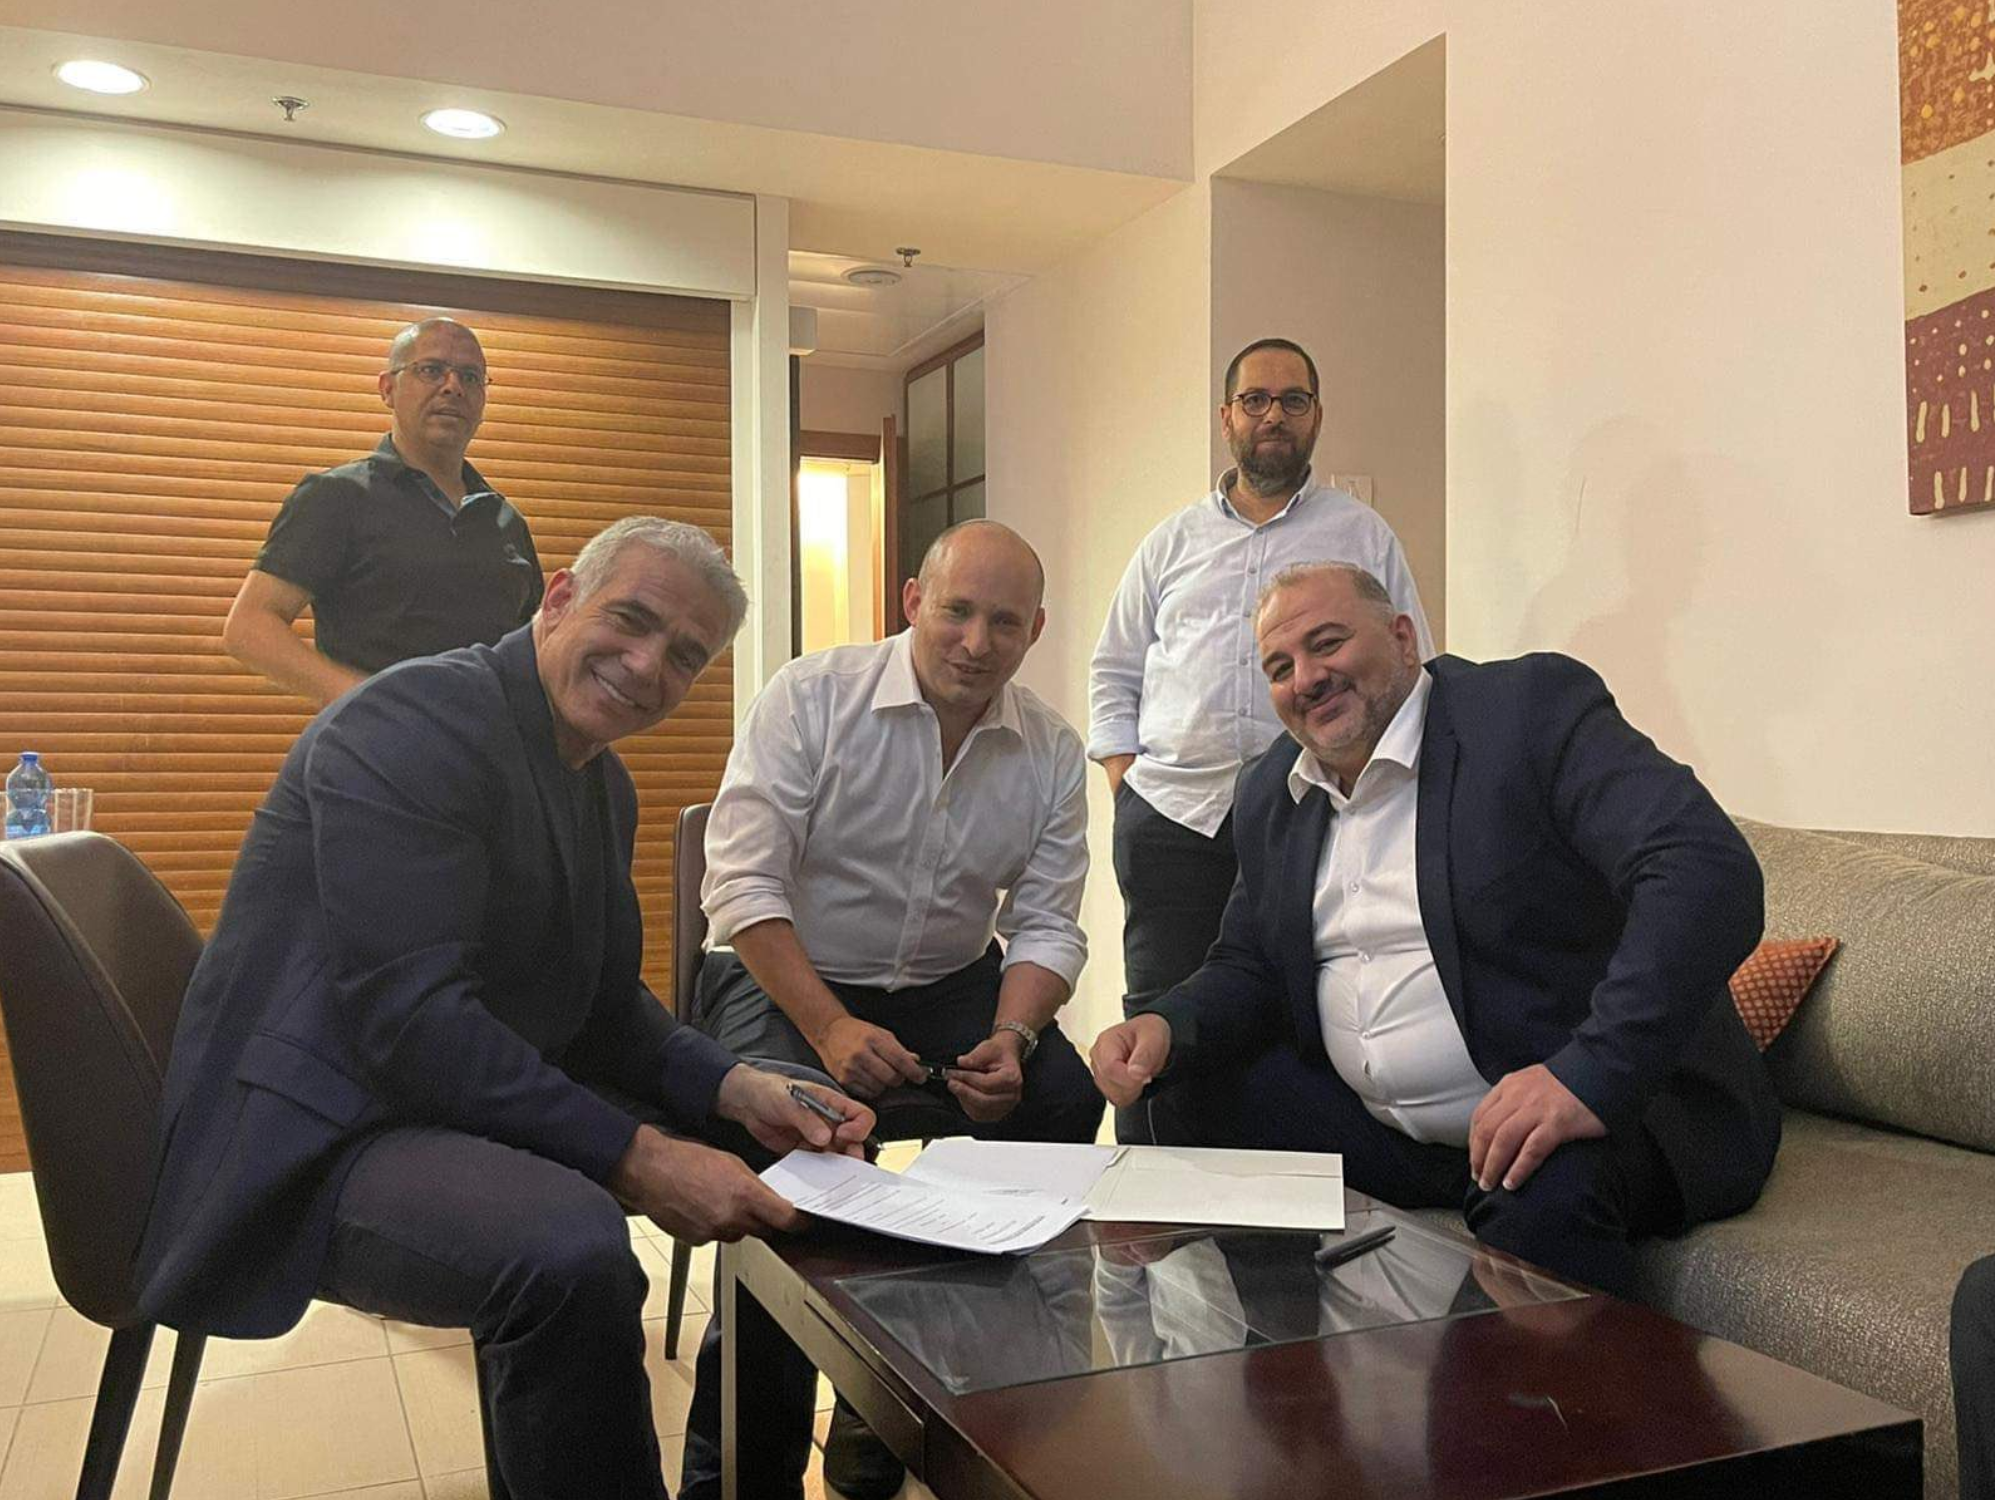 Mansour Abbas with his partners in the Israeli government